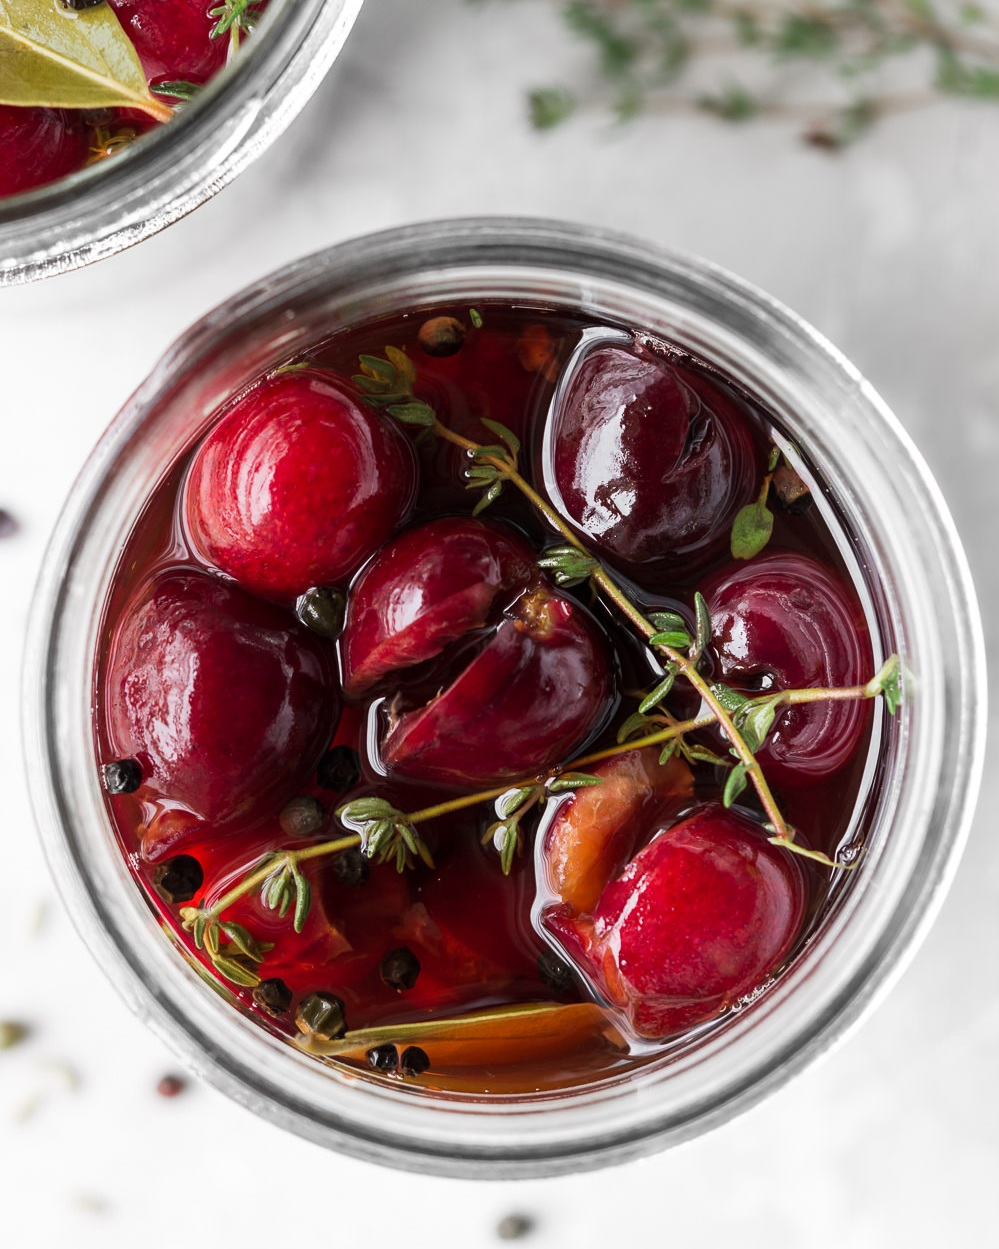 quick+pickled+cherry+recipe.jpg